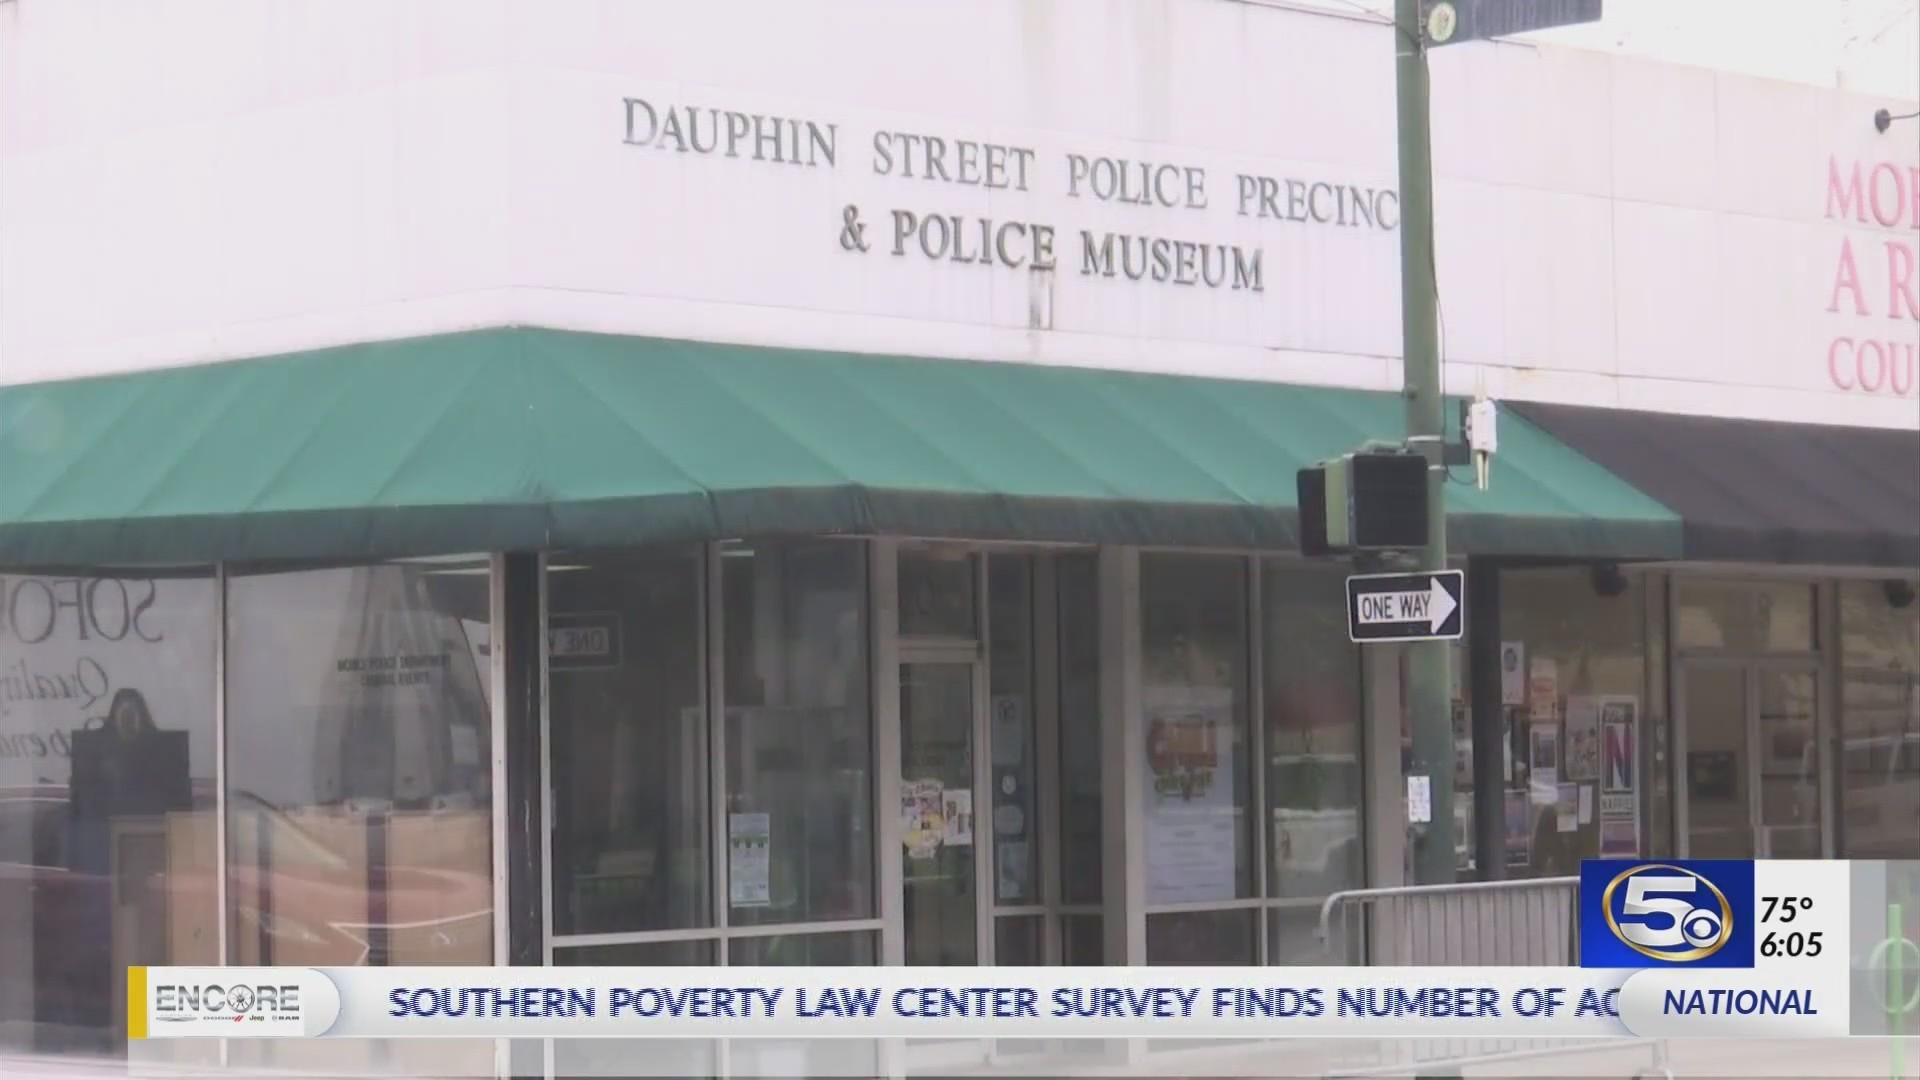 VIDEO: Residents & business owners happy to hear of downtown police precinct expansion